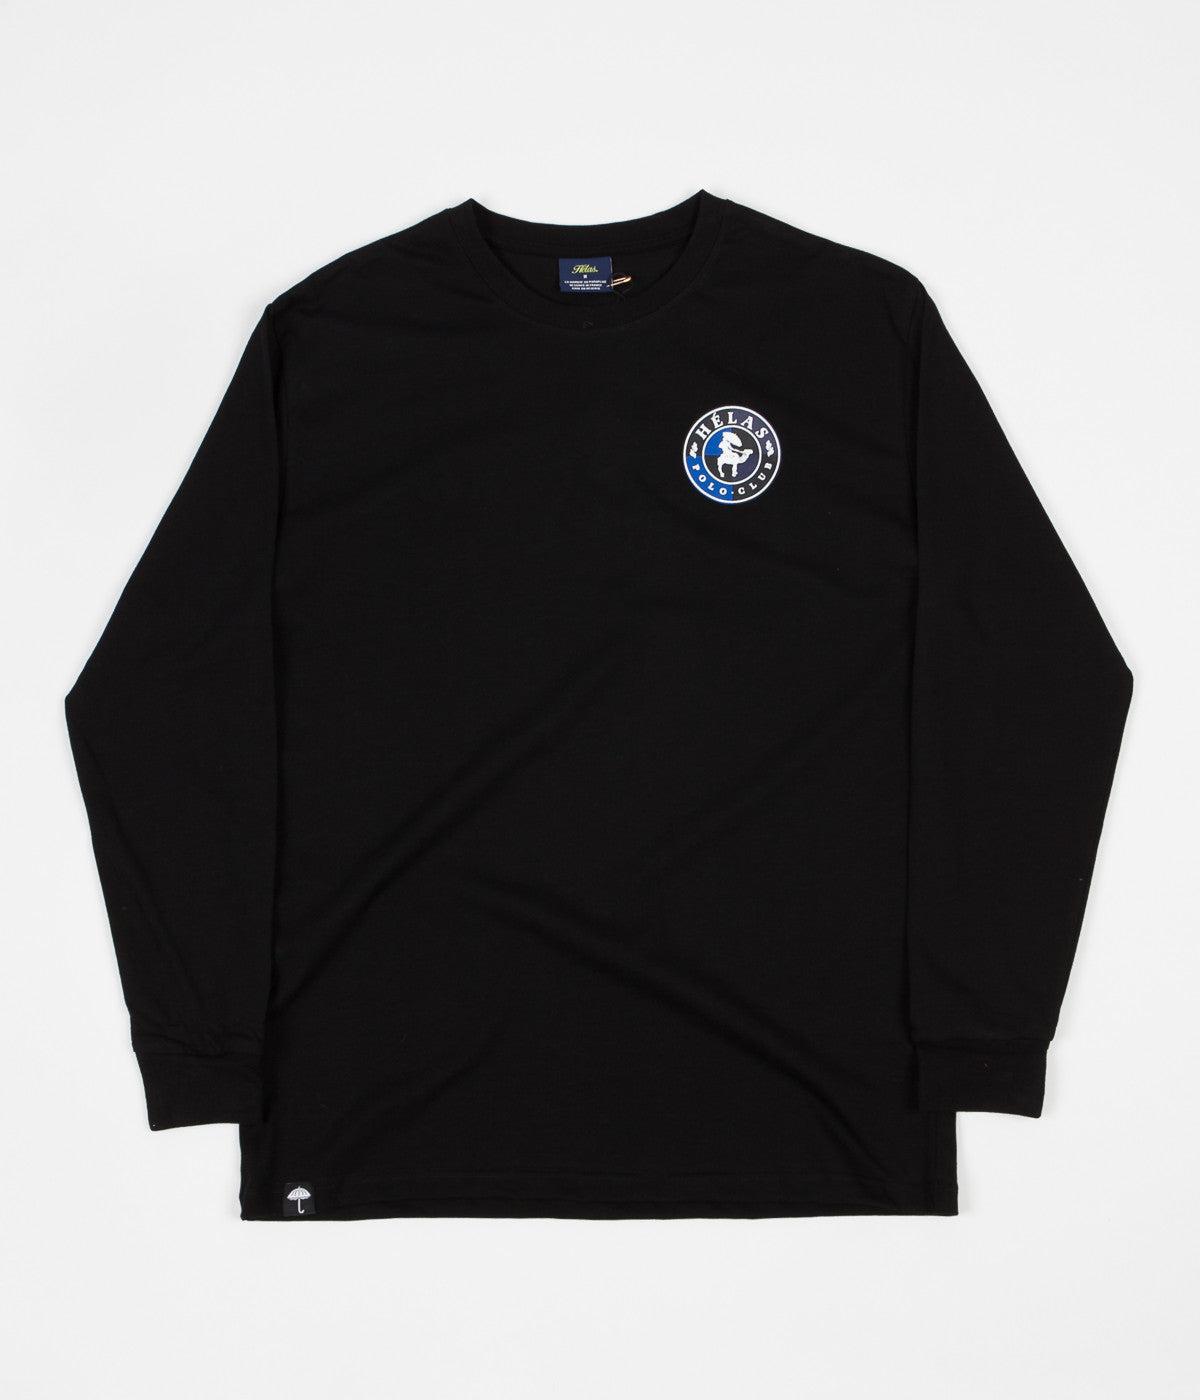 Helas Polo Club Long Sleeve T-Shirt - Black